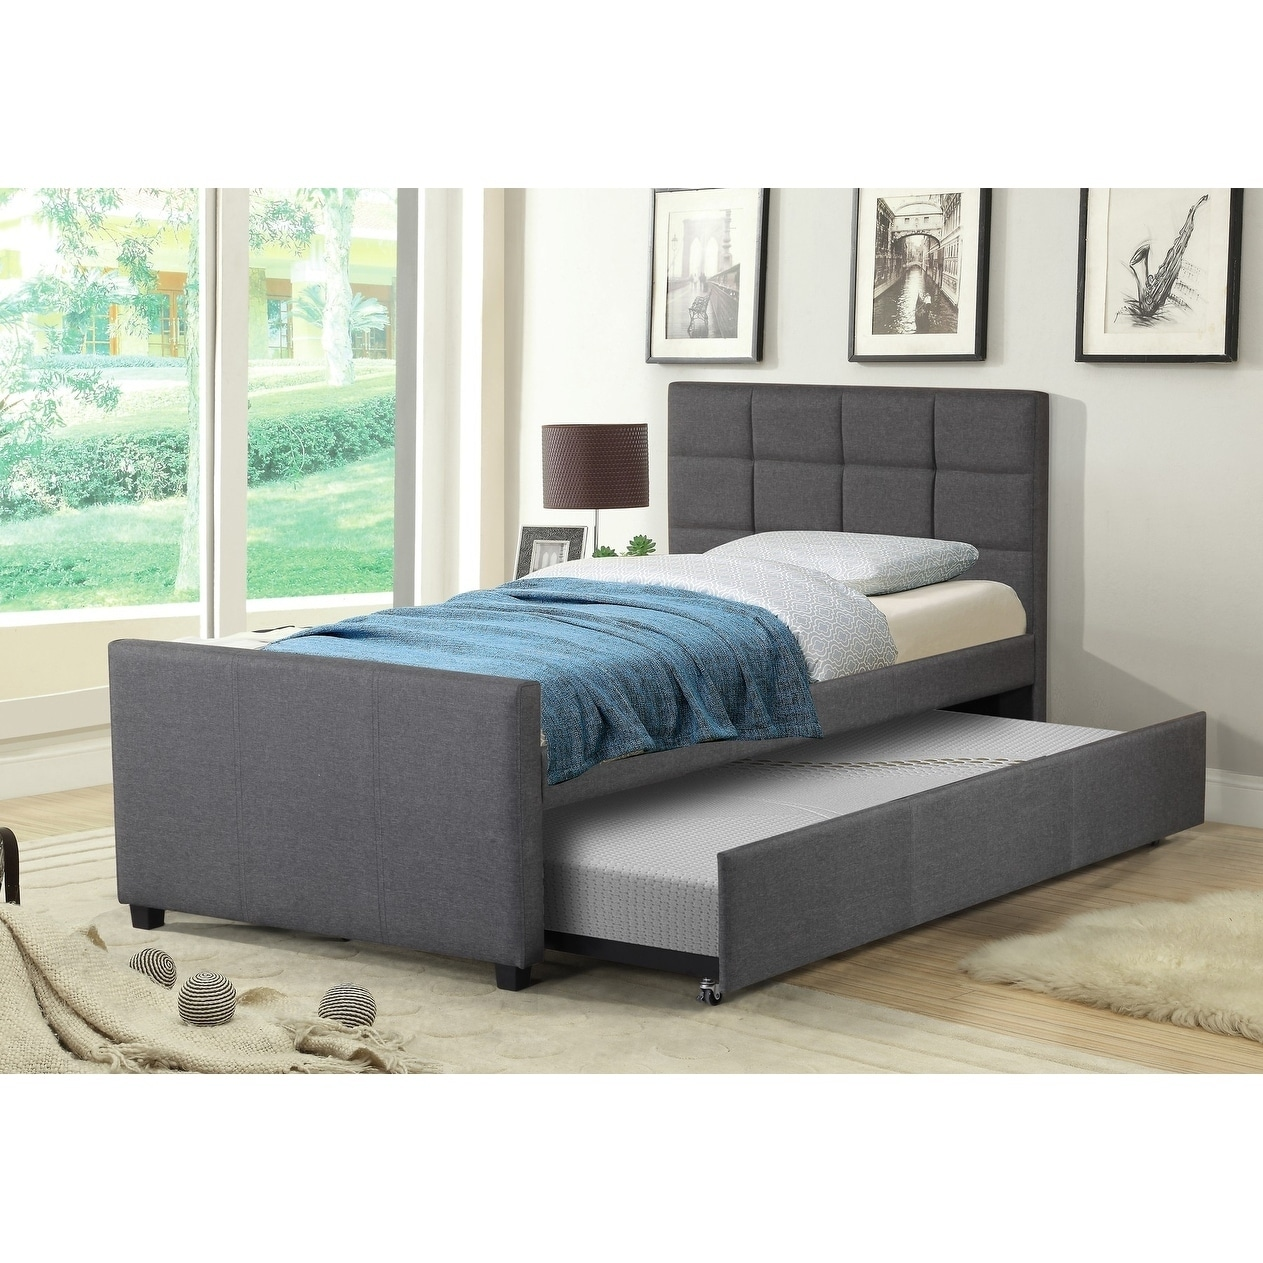 Discount Trundle Beds Best Quality Furniture Twin Upholstered Panel Bed With Twin Trundle Bed